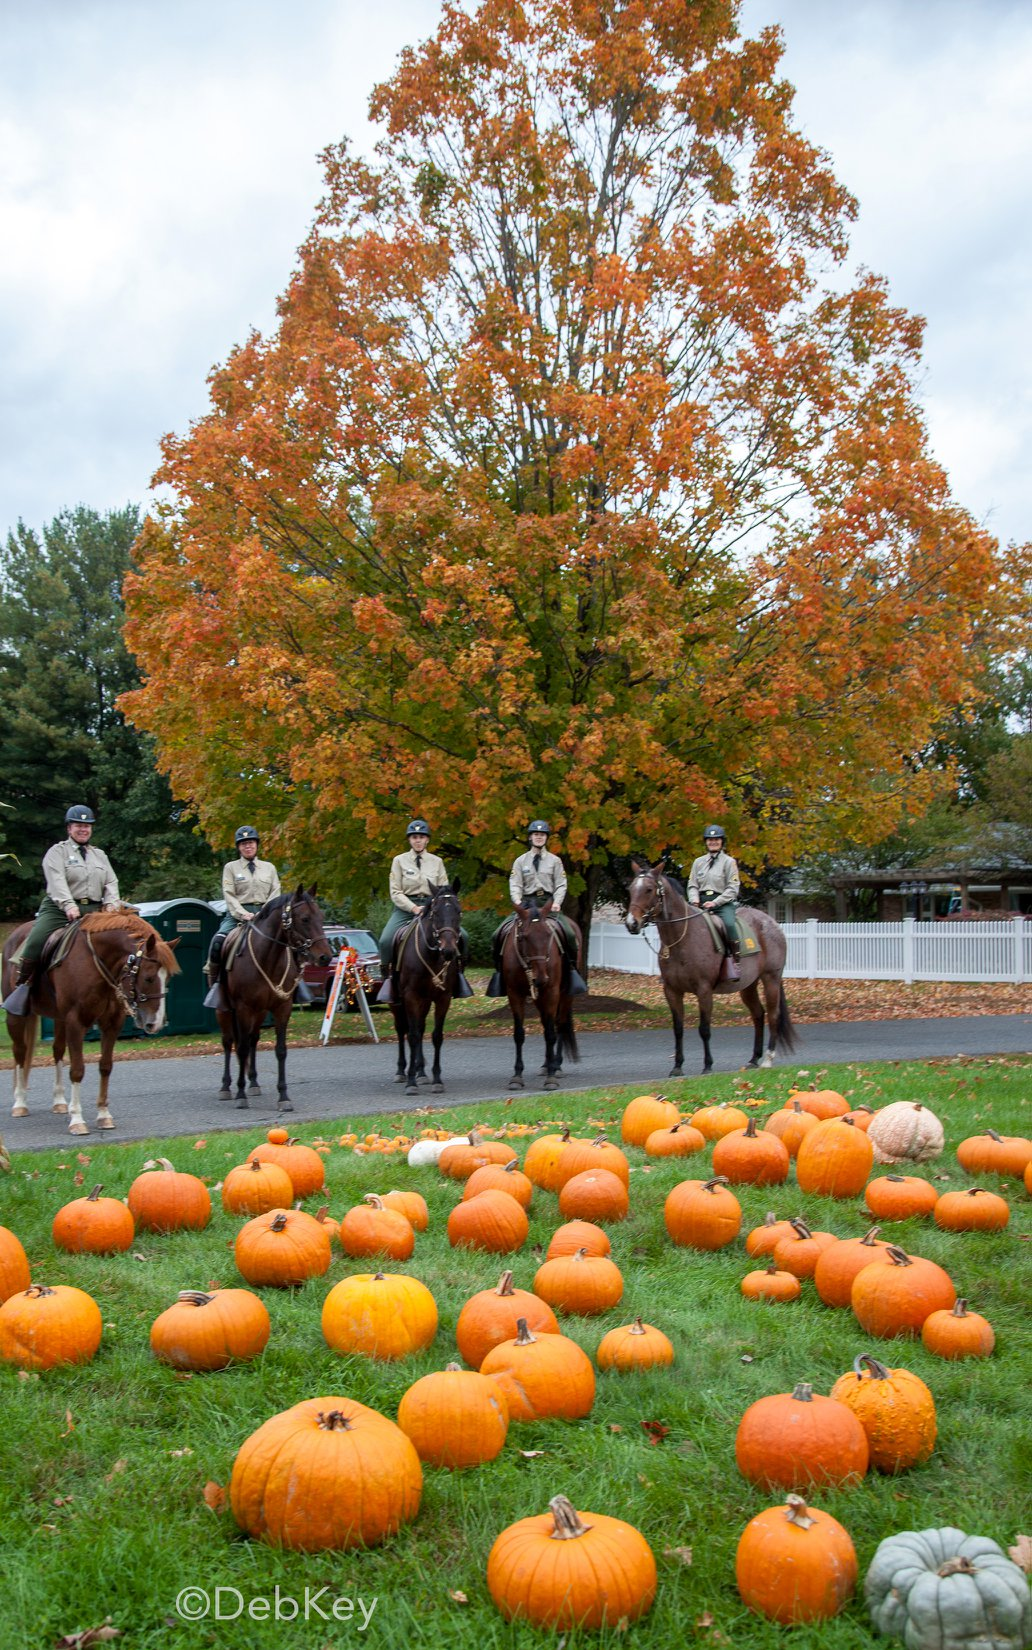 image is of troopers riding horses with a fall tree and pumpkins